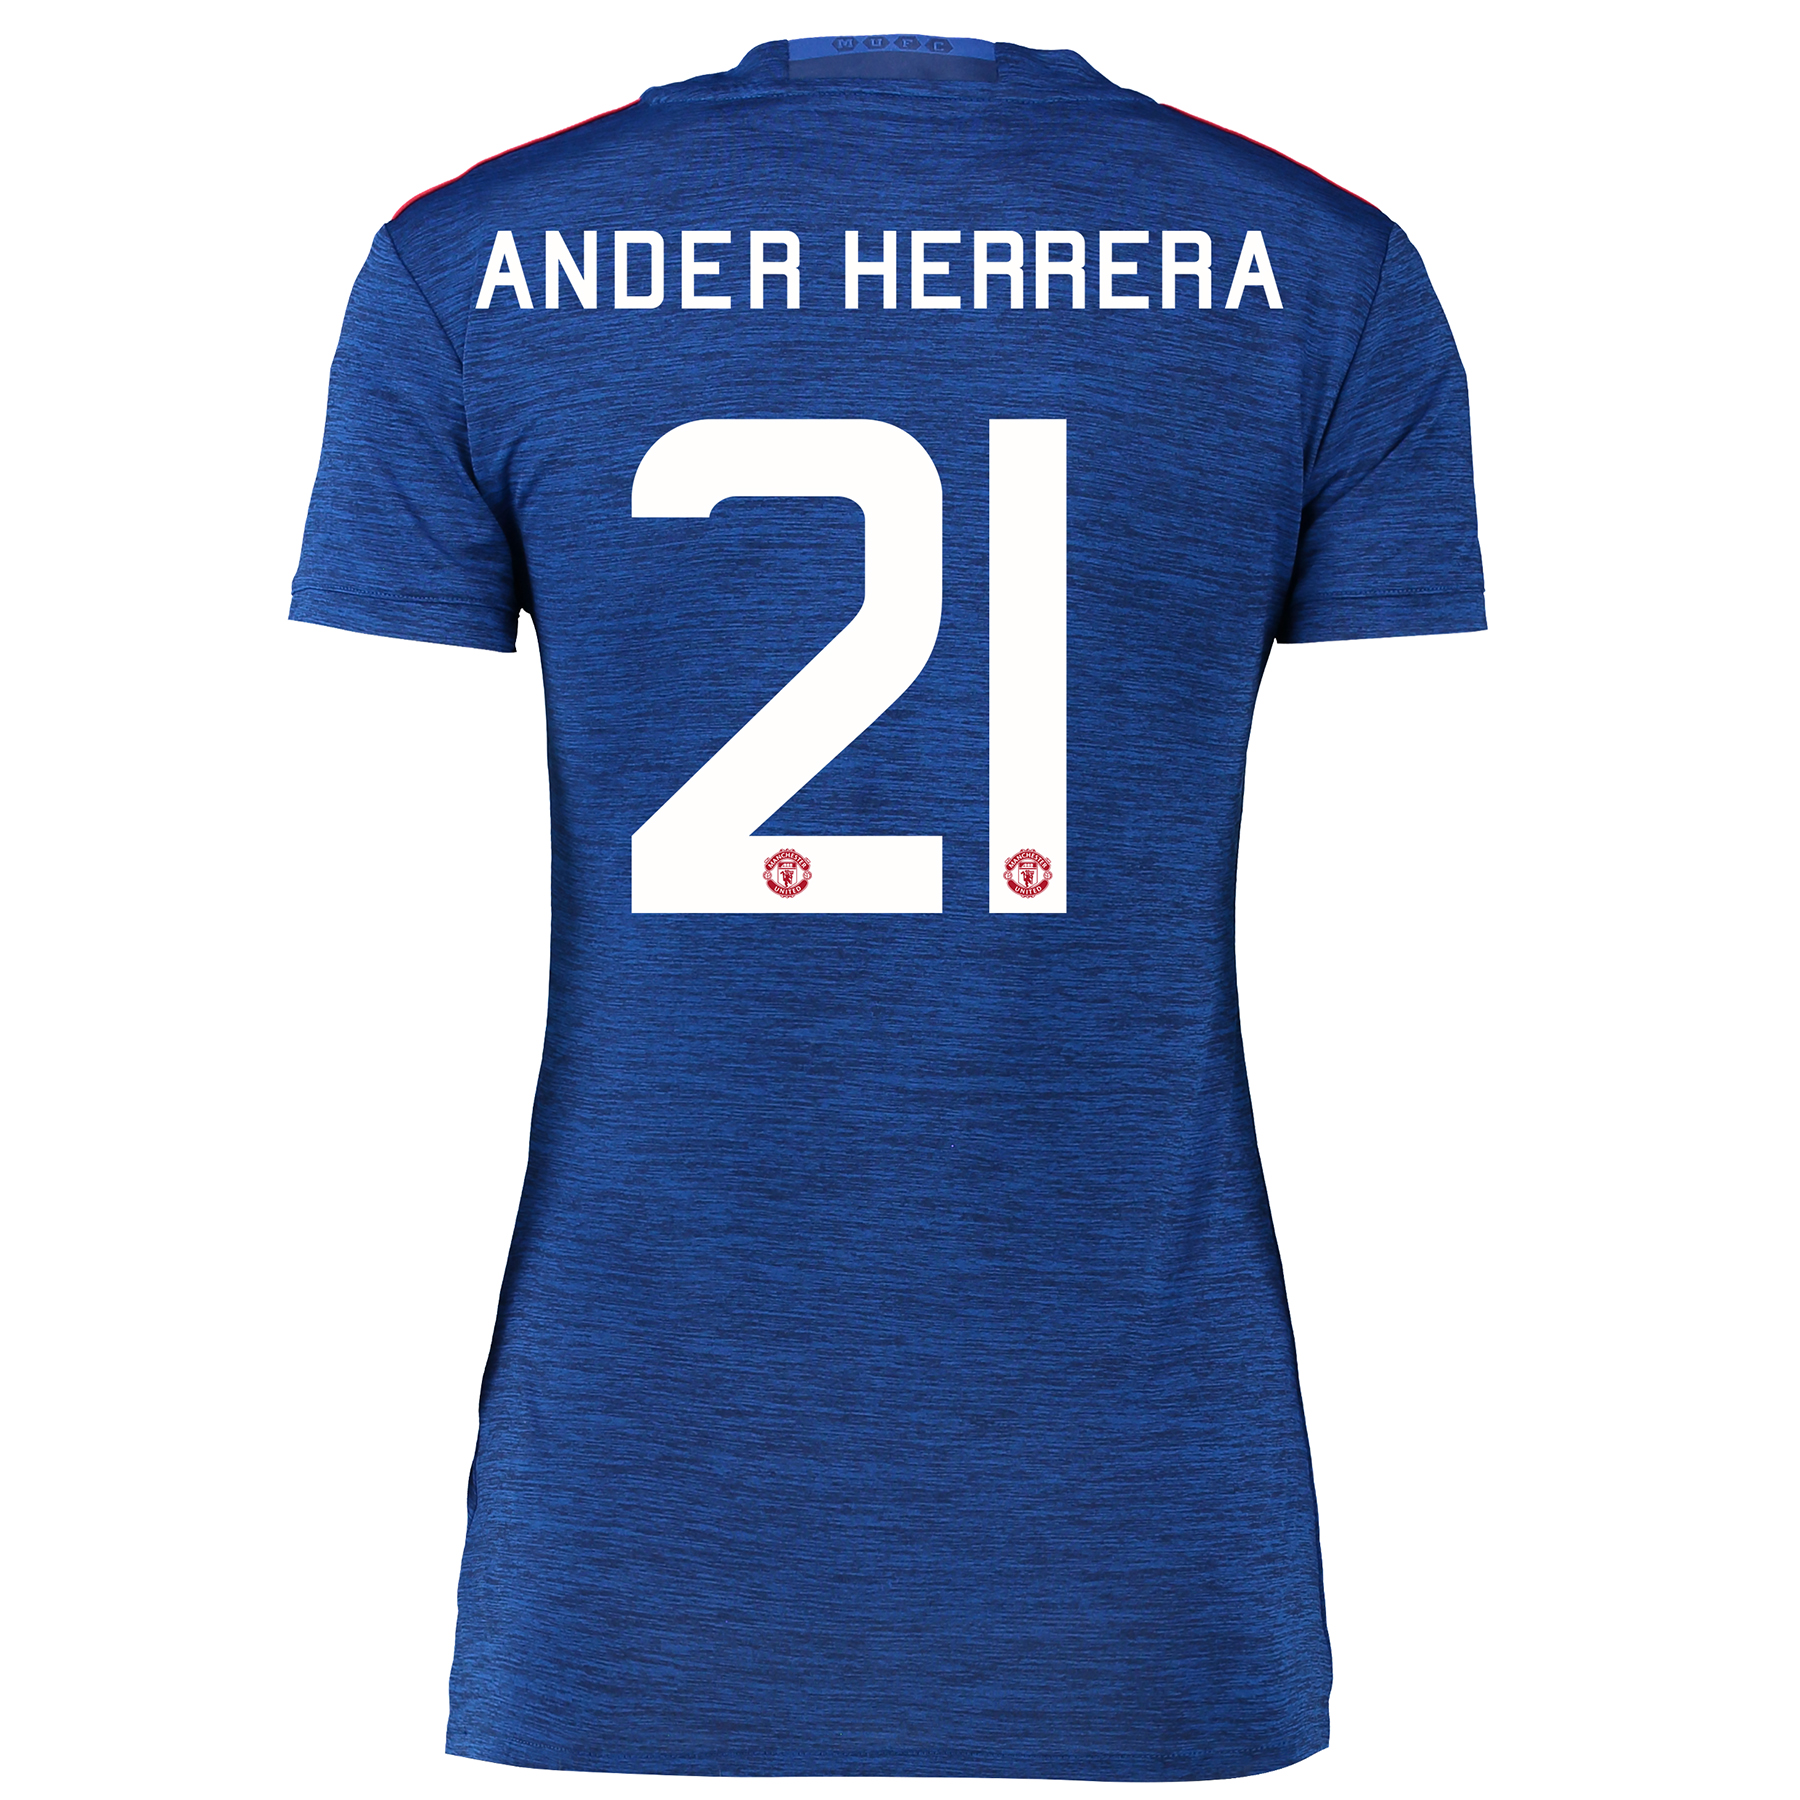 Manchester United Cup Away Shirt 2016-17 - Womens with Herrera 21 prin